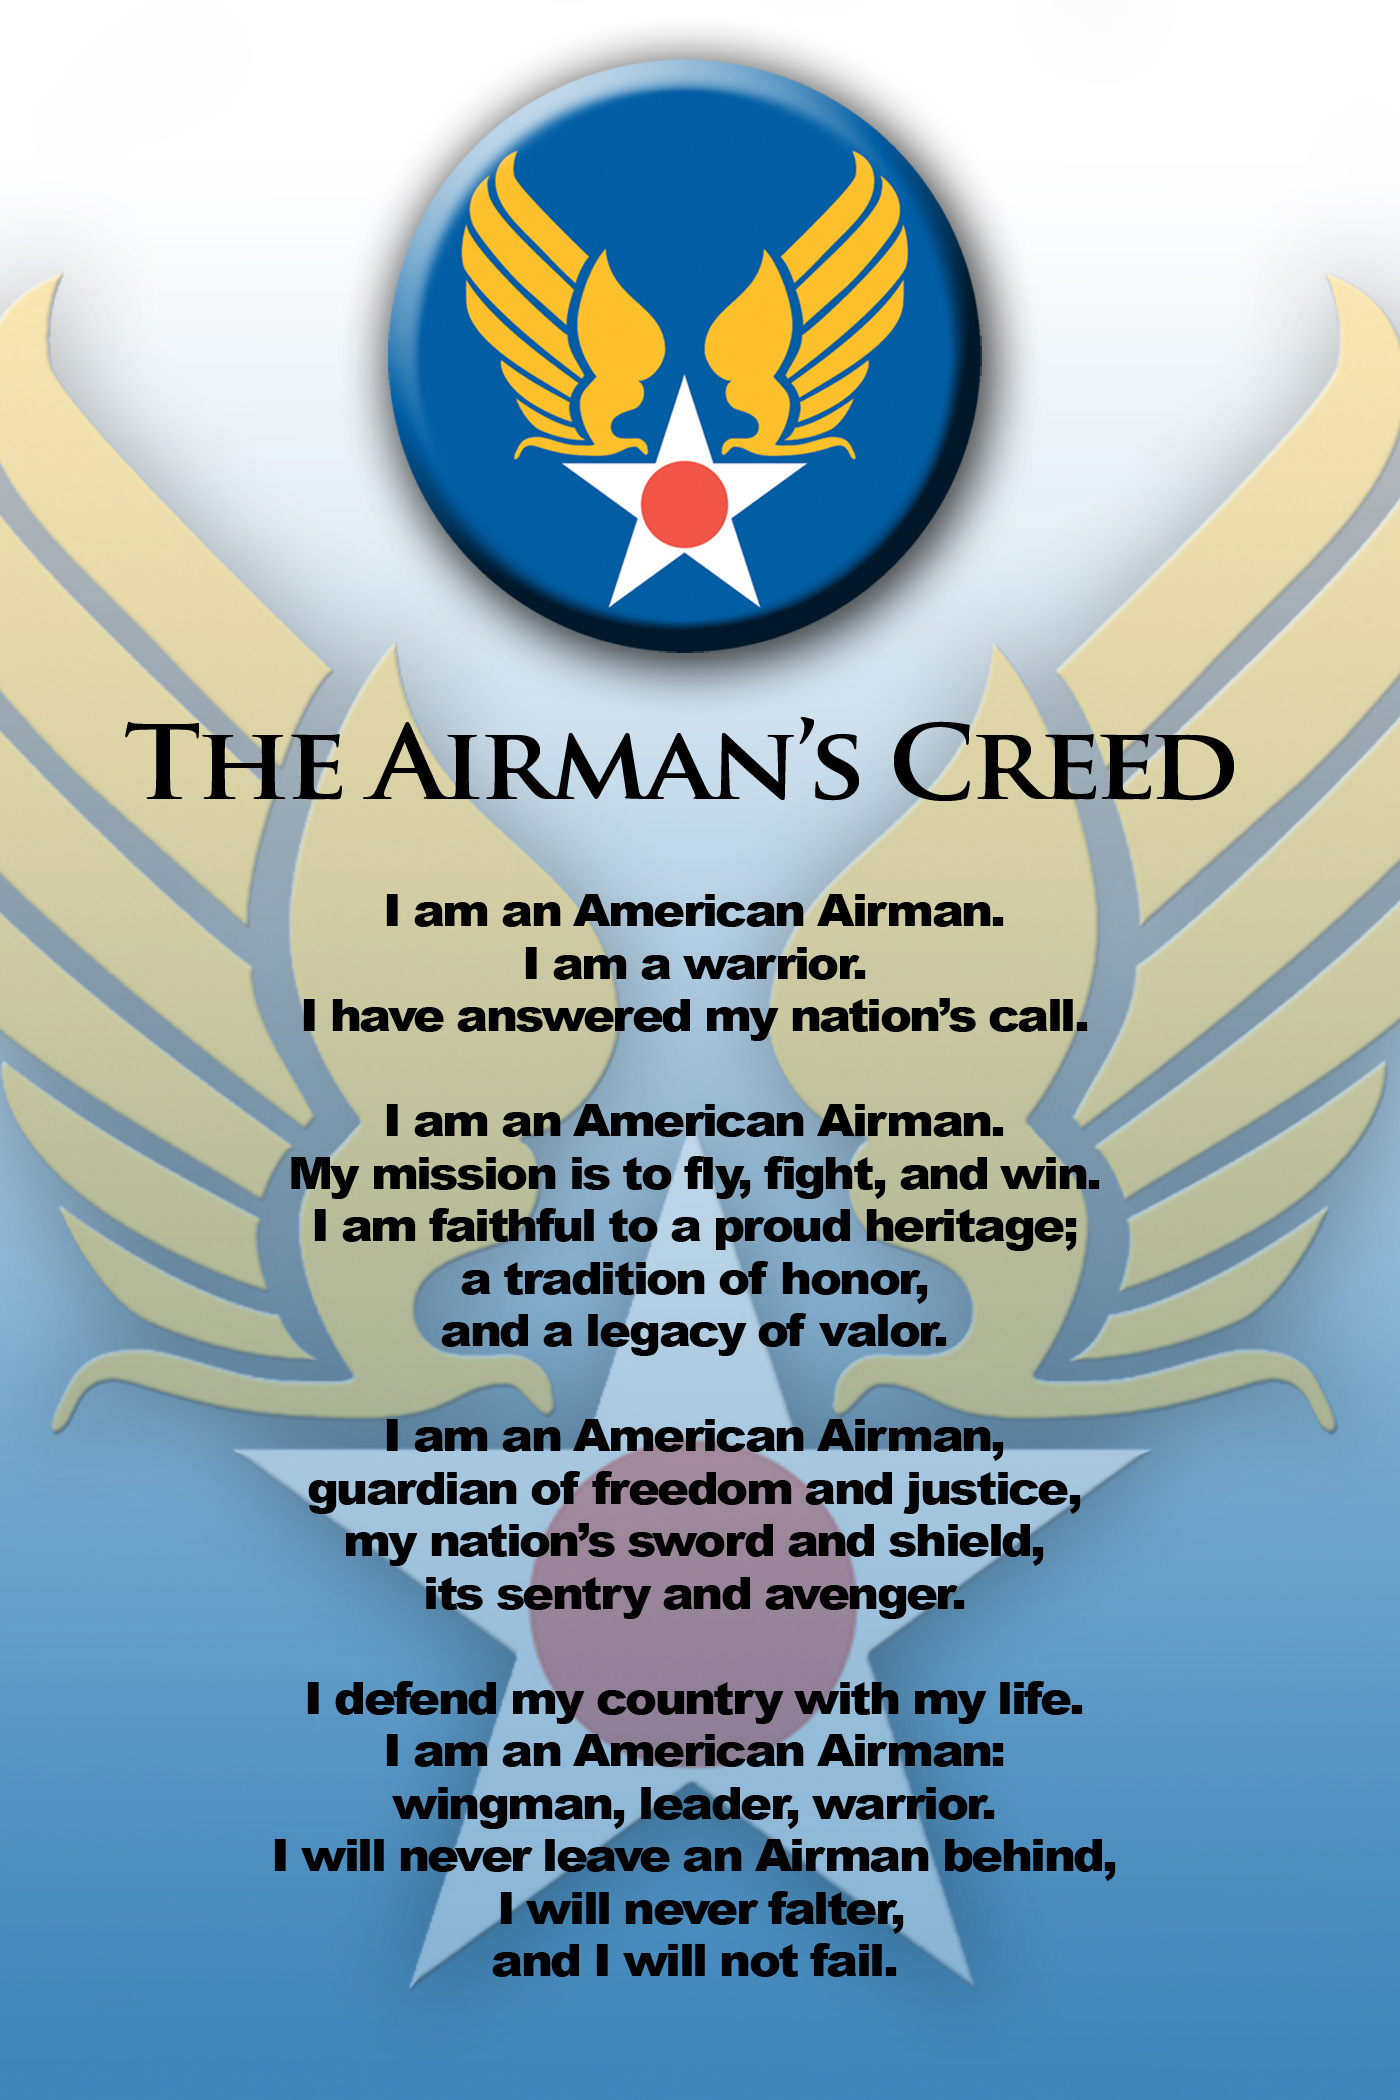 Airmans creed 512th airlift wing article display airmans creed thecheapjerseys Images